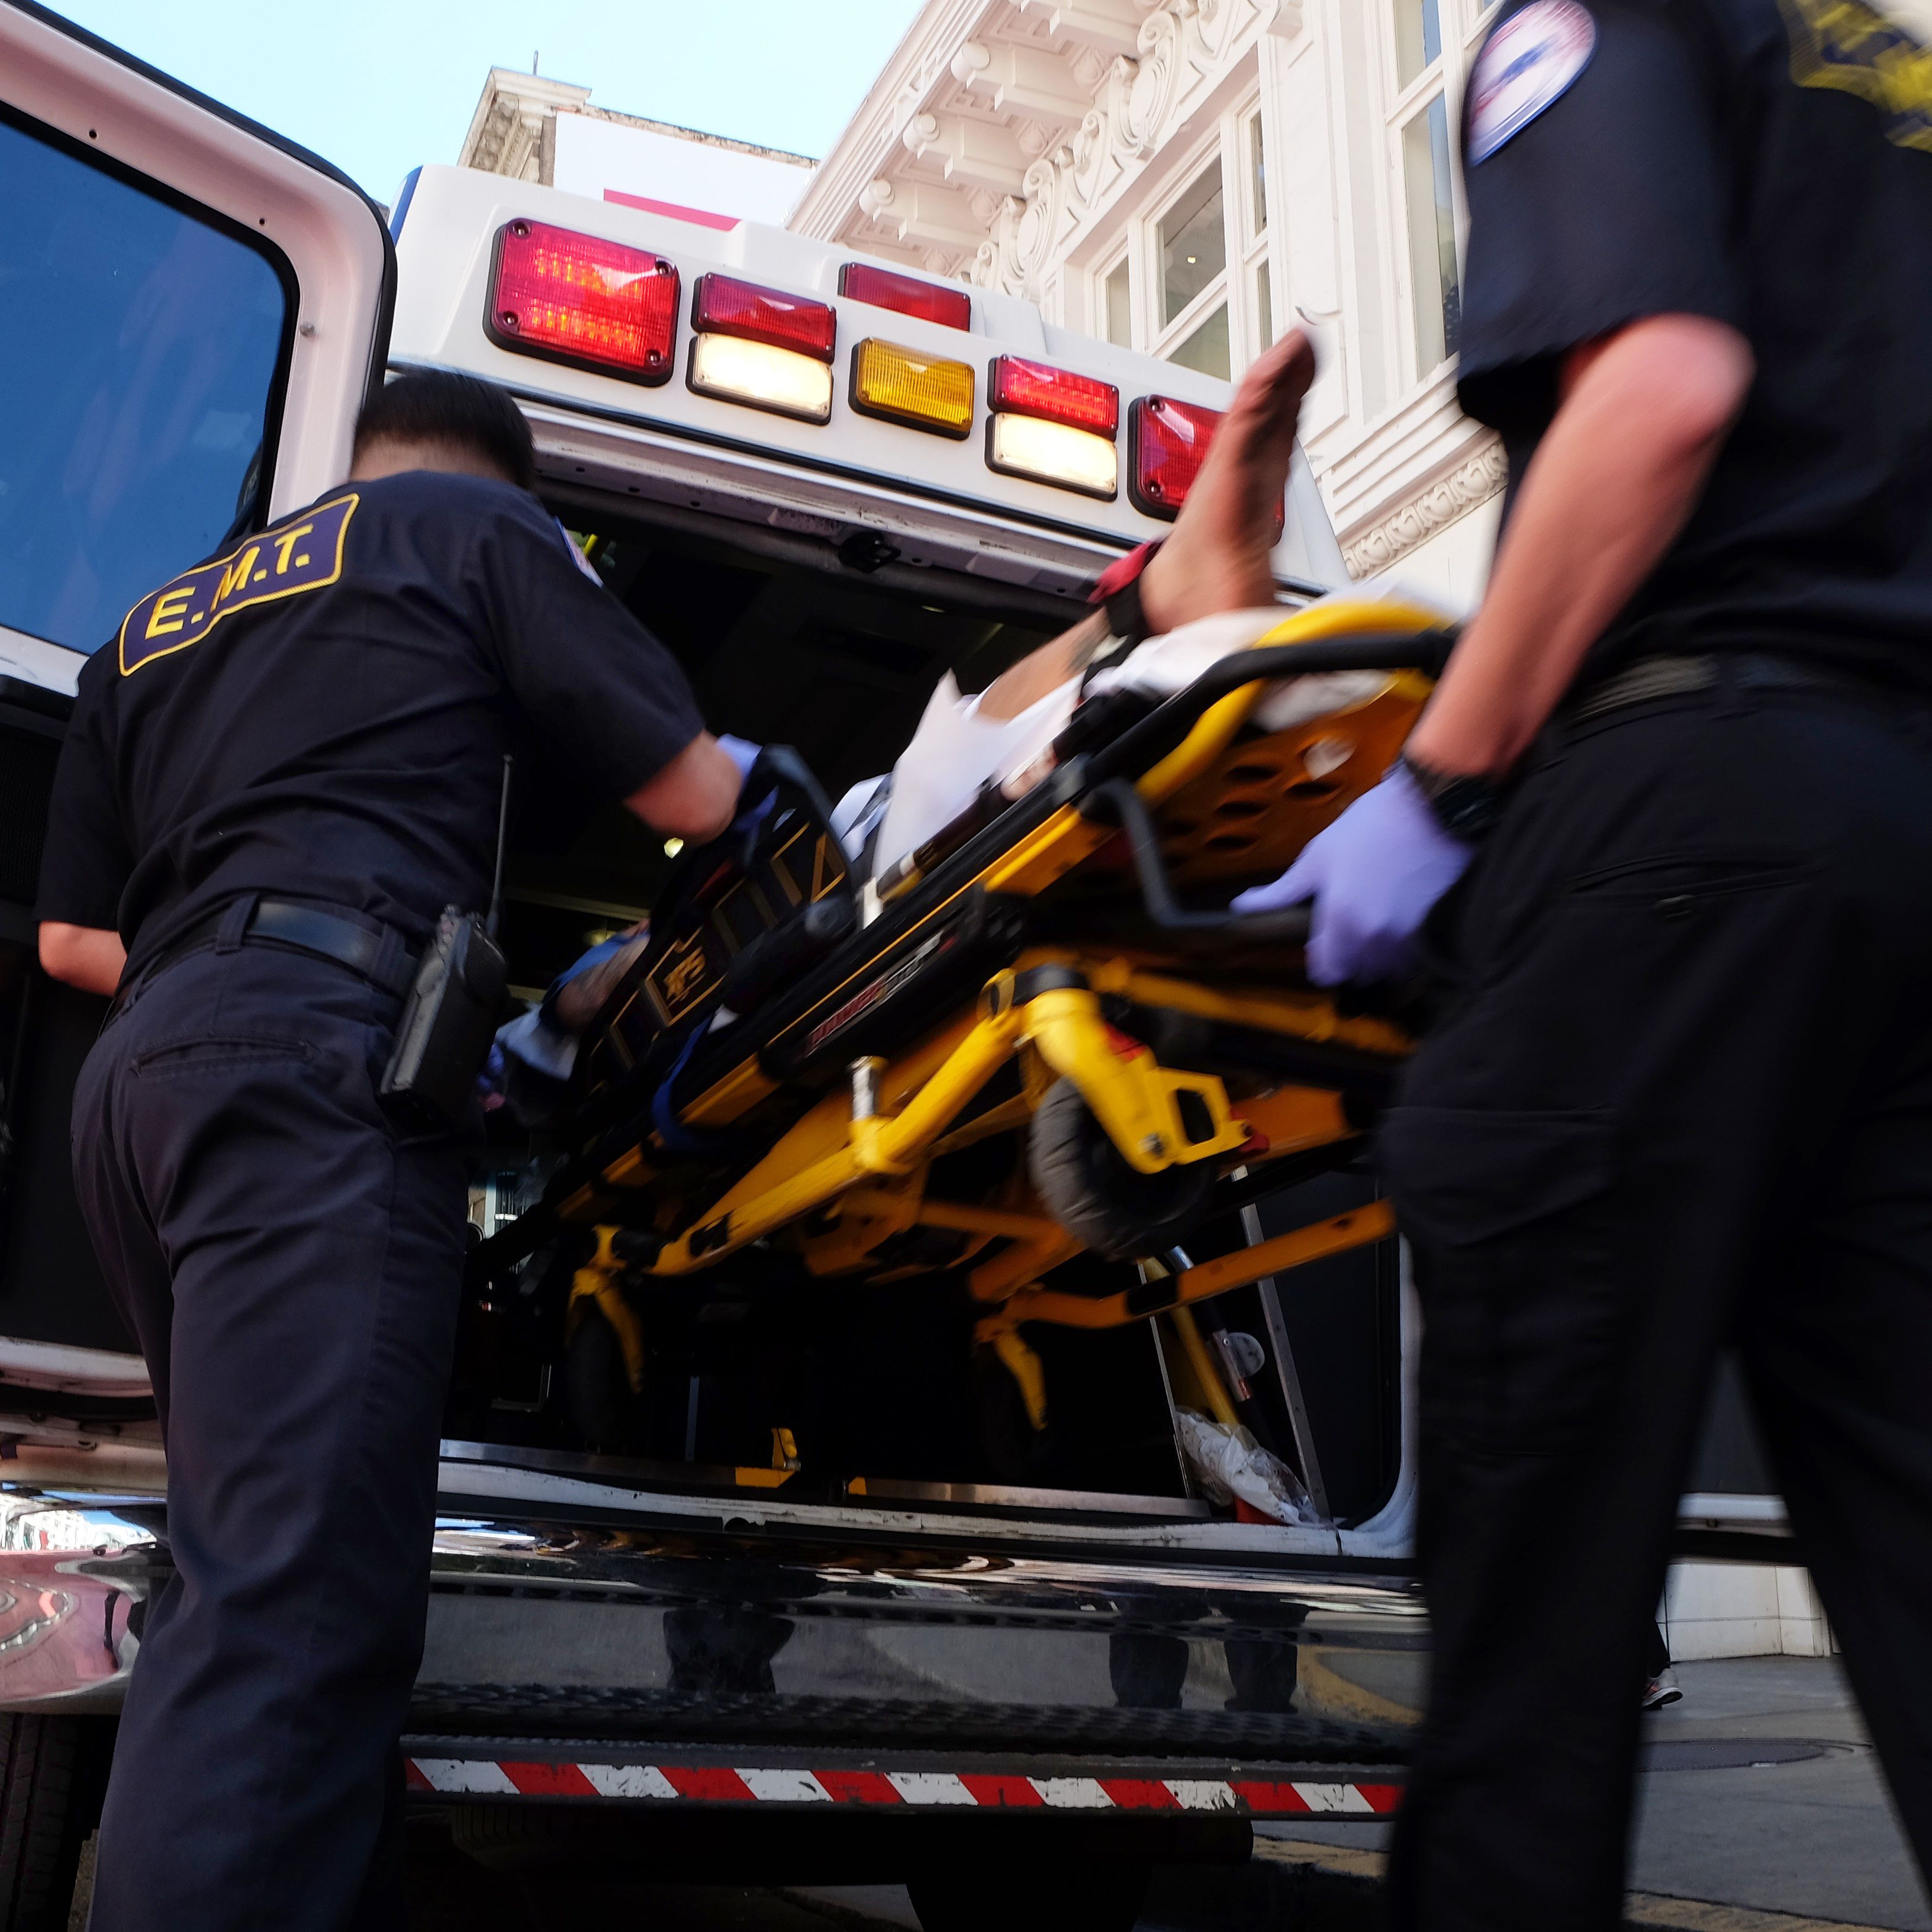 What You Need to Know About EMT Training